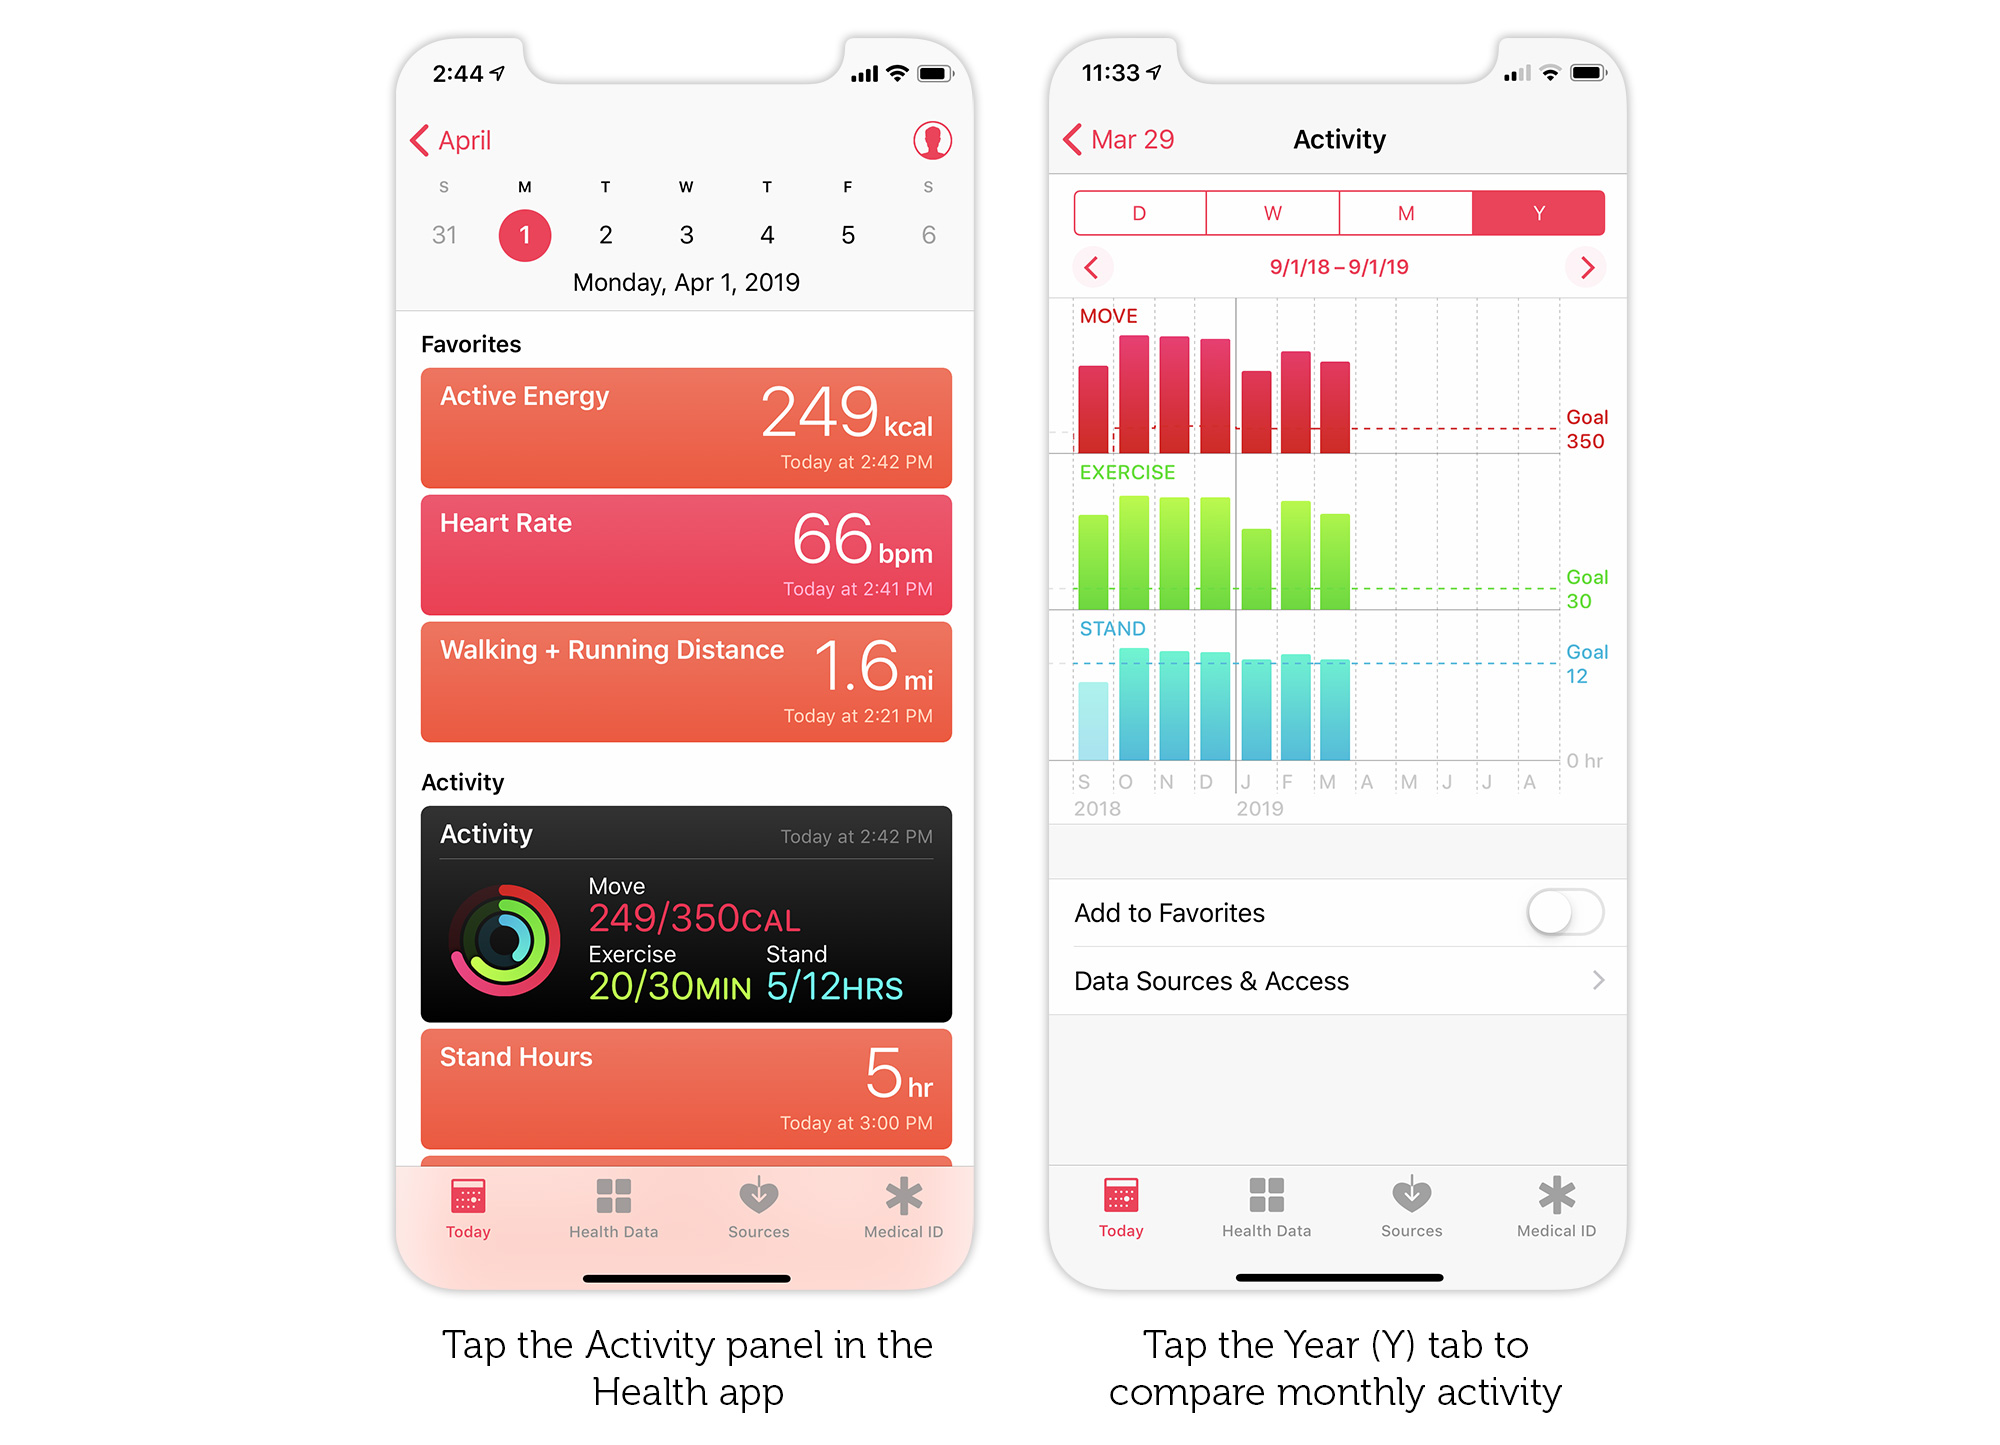 How to view activity by month and year in the Apple Health app.